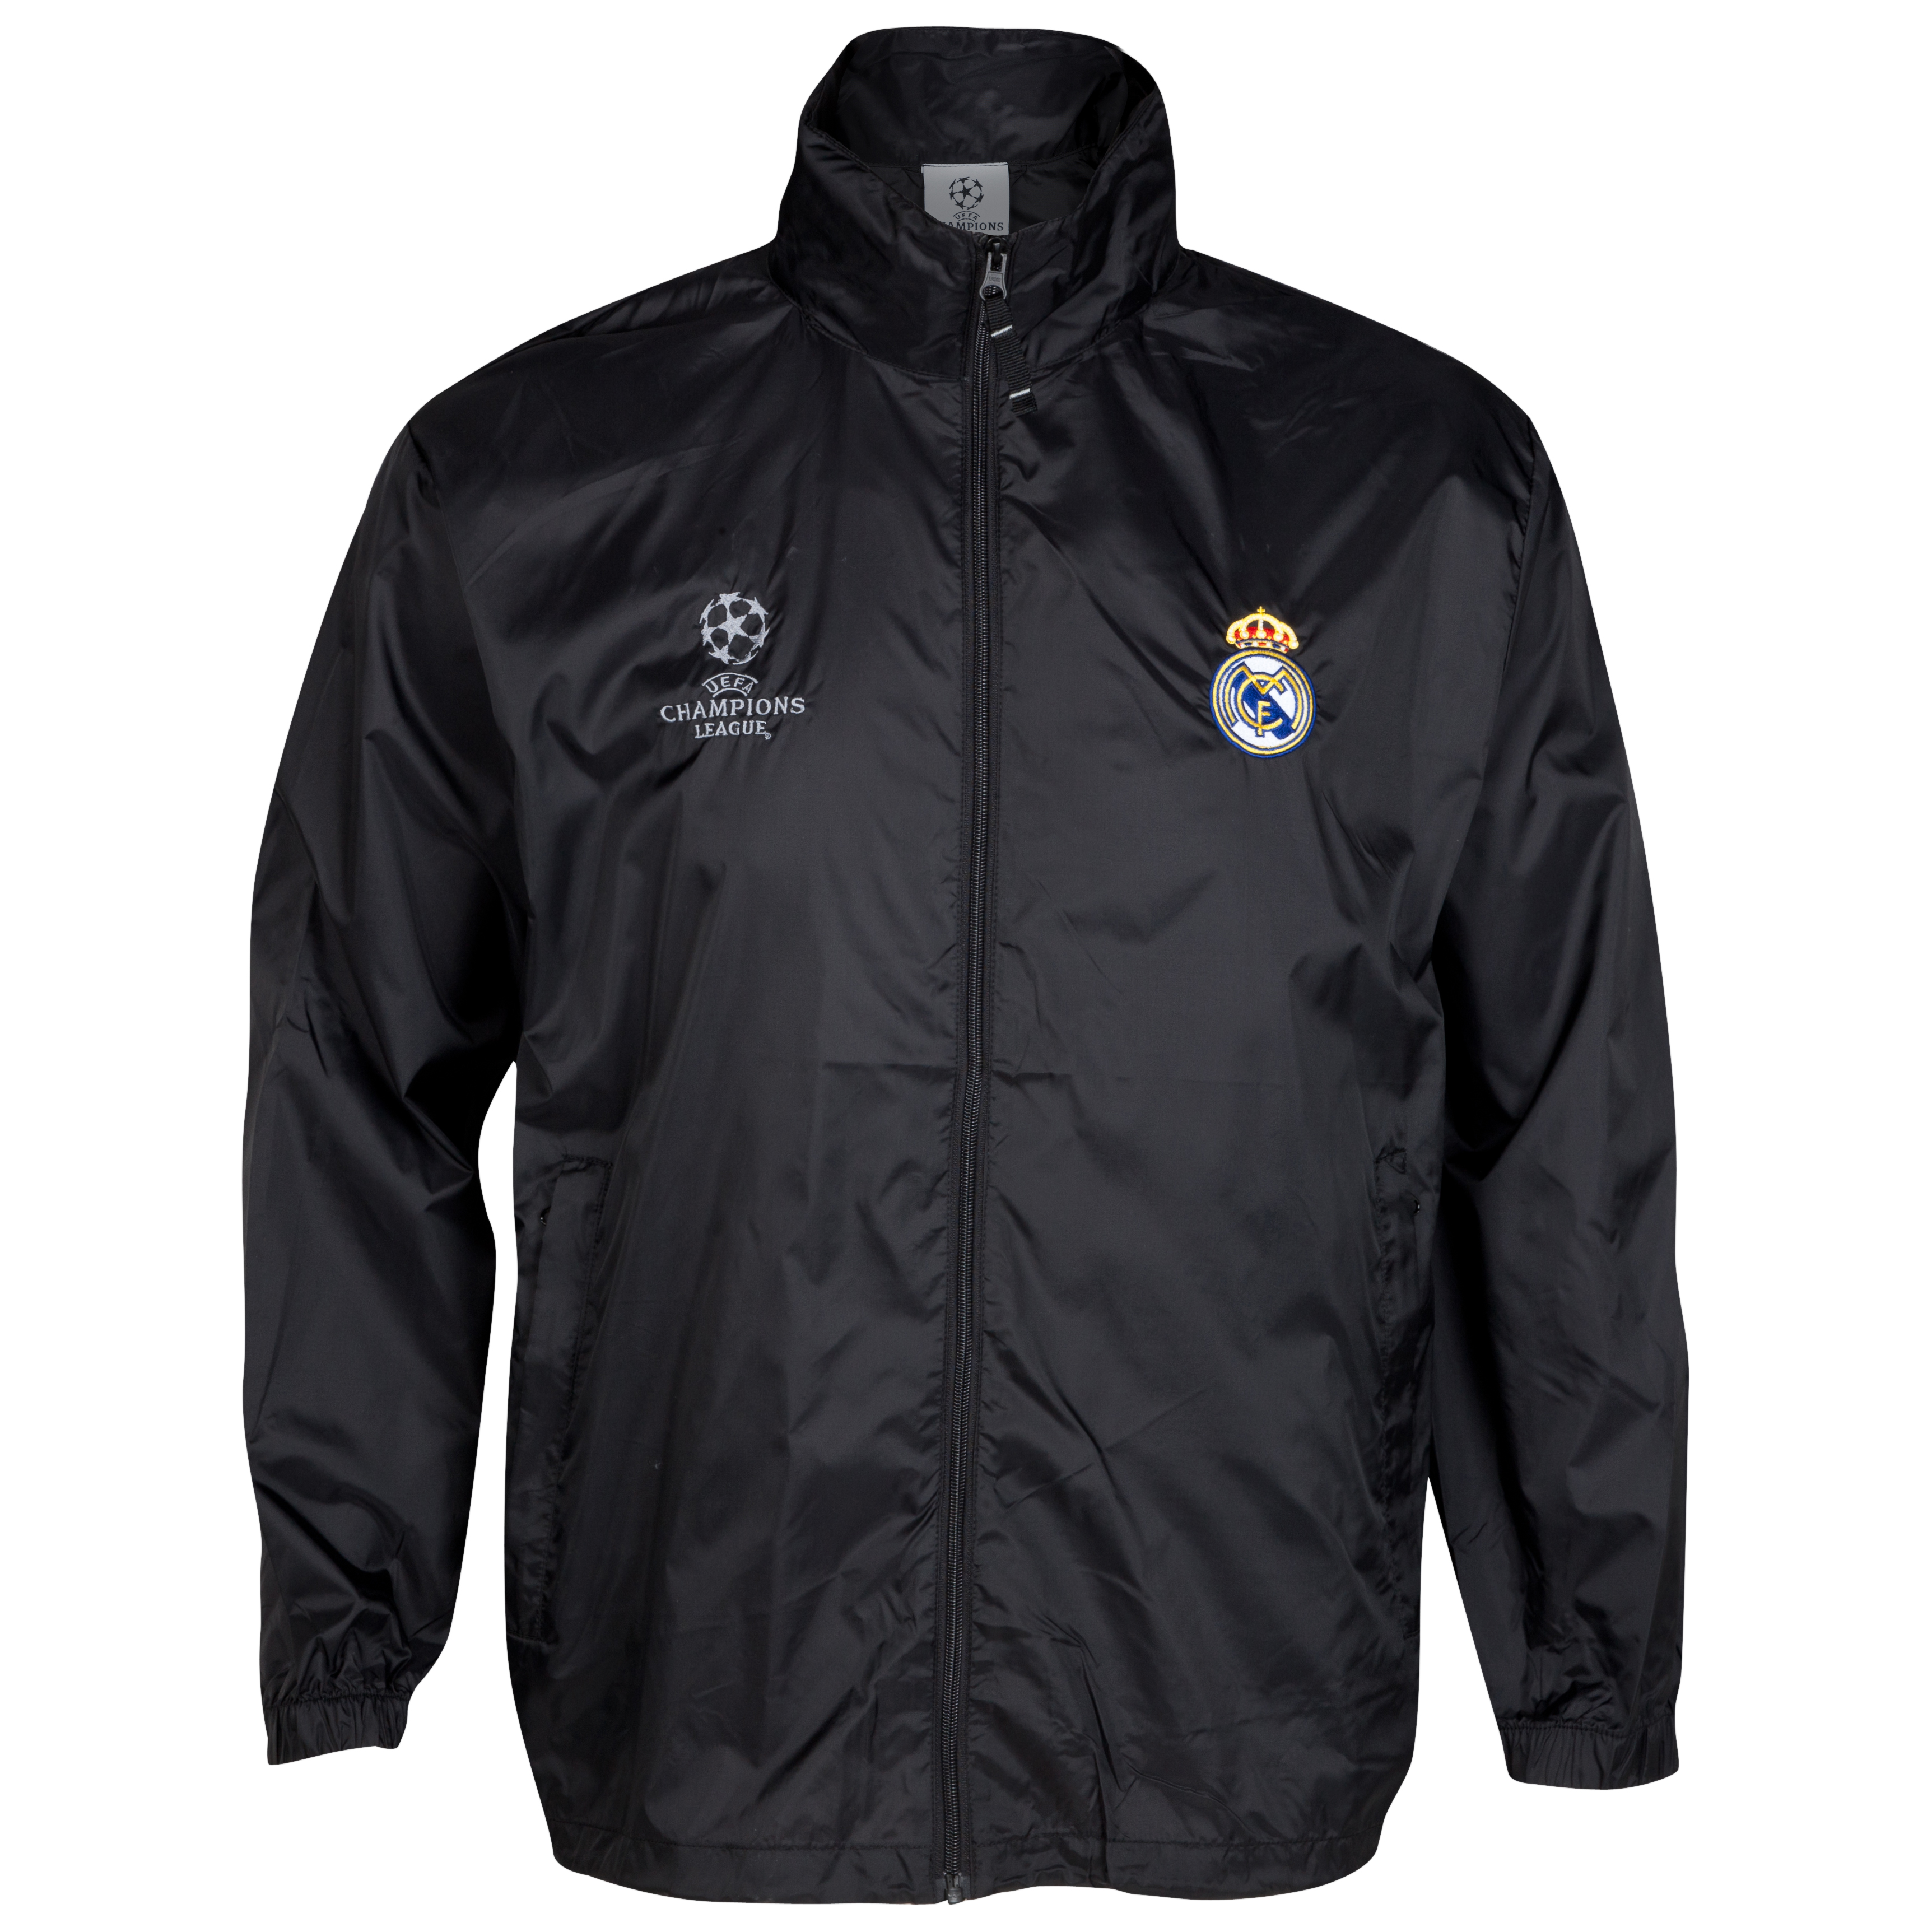 Anorak bordado UEFA Champions League Real Madrid - Negro